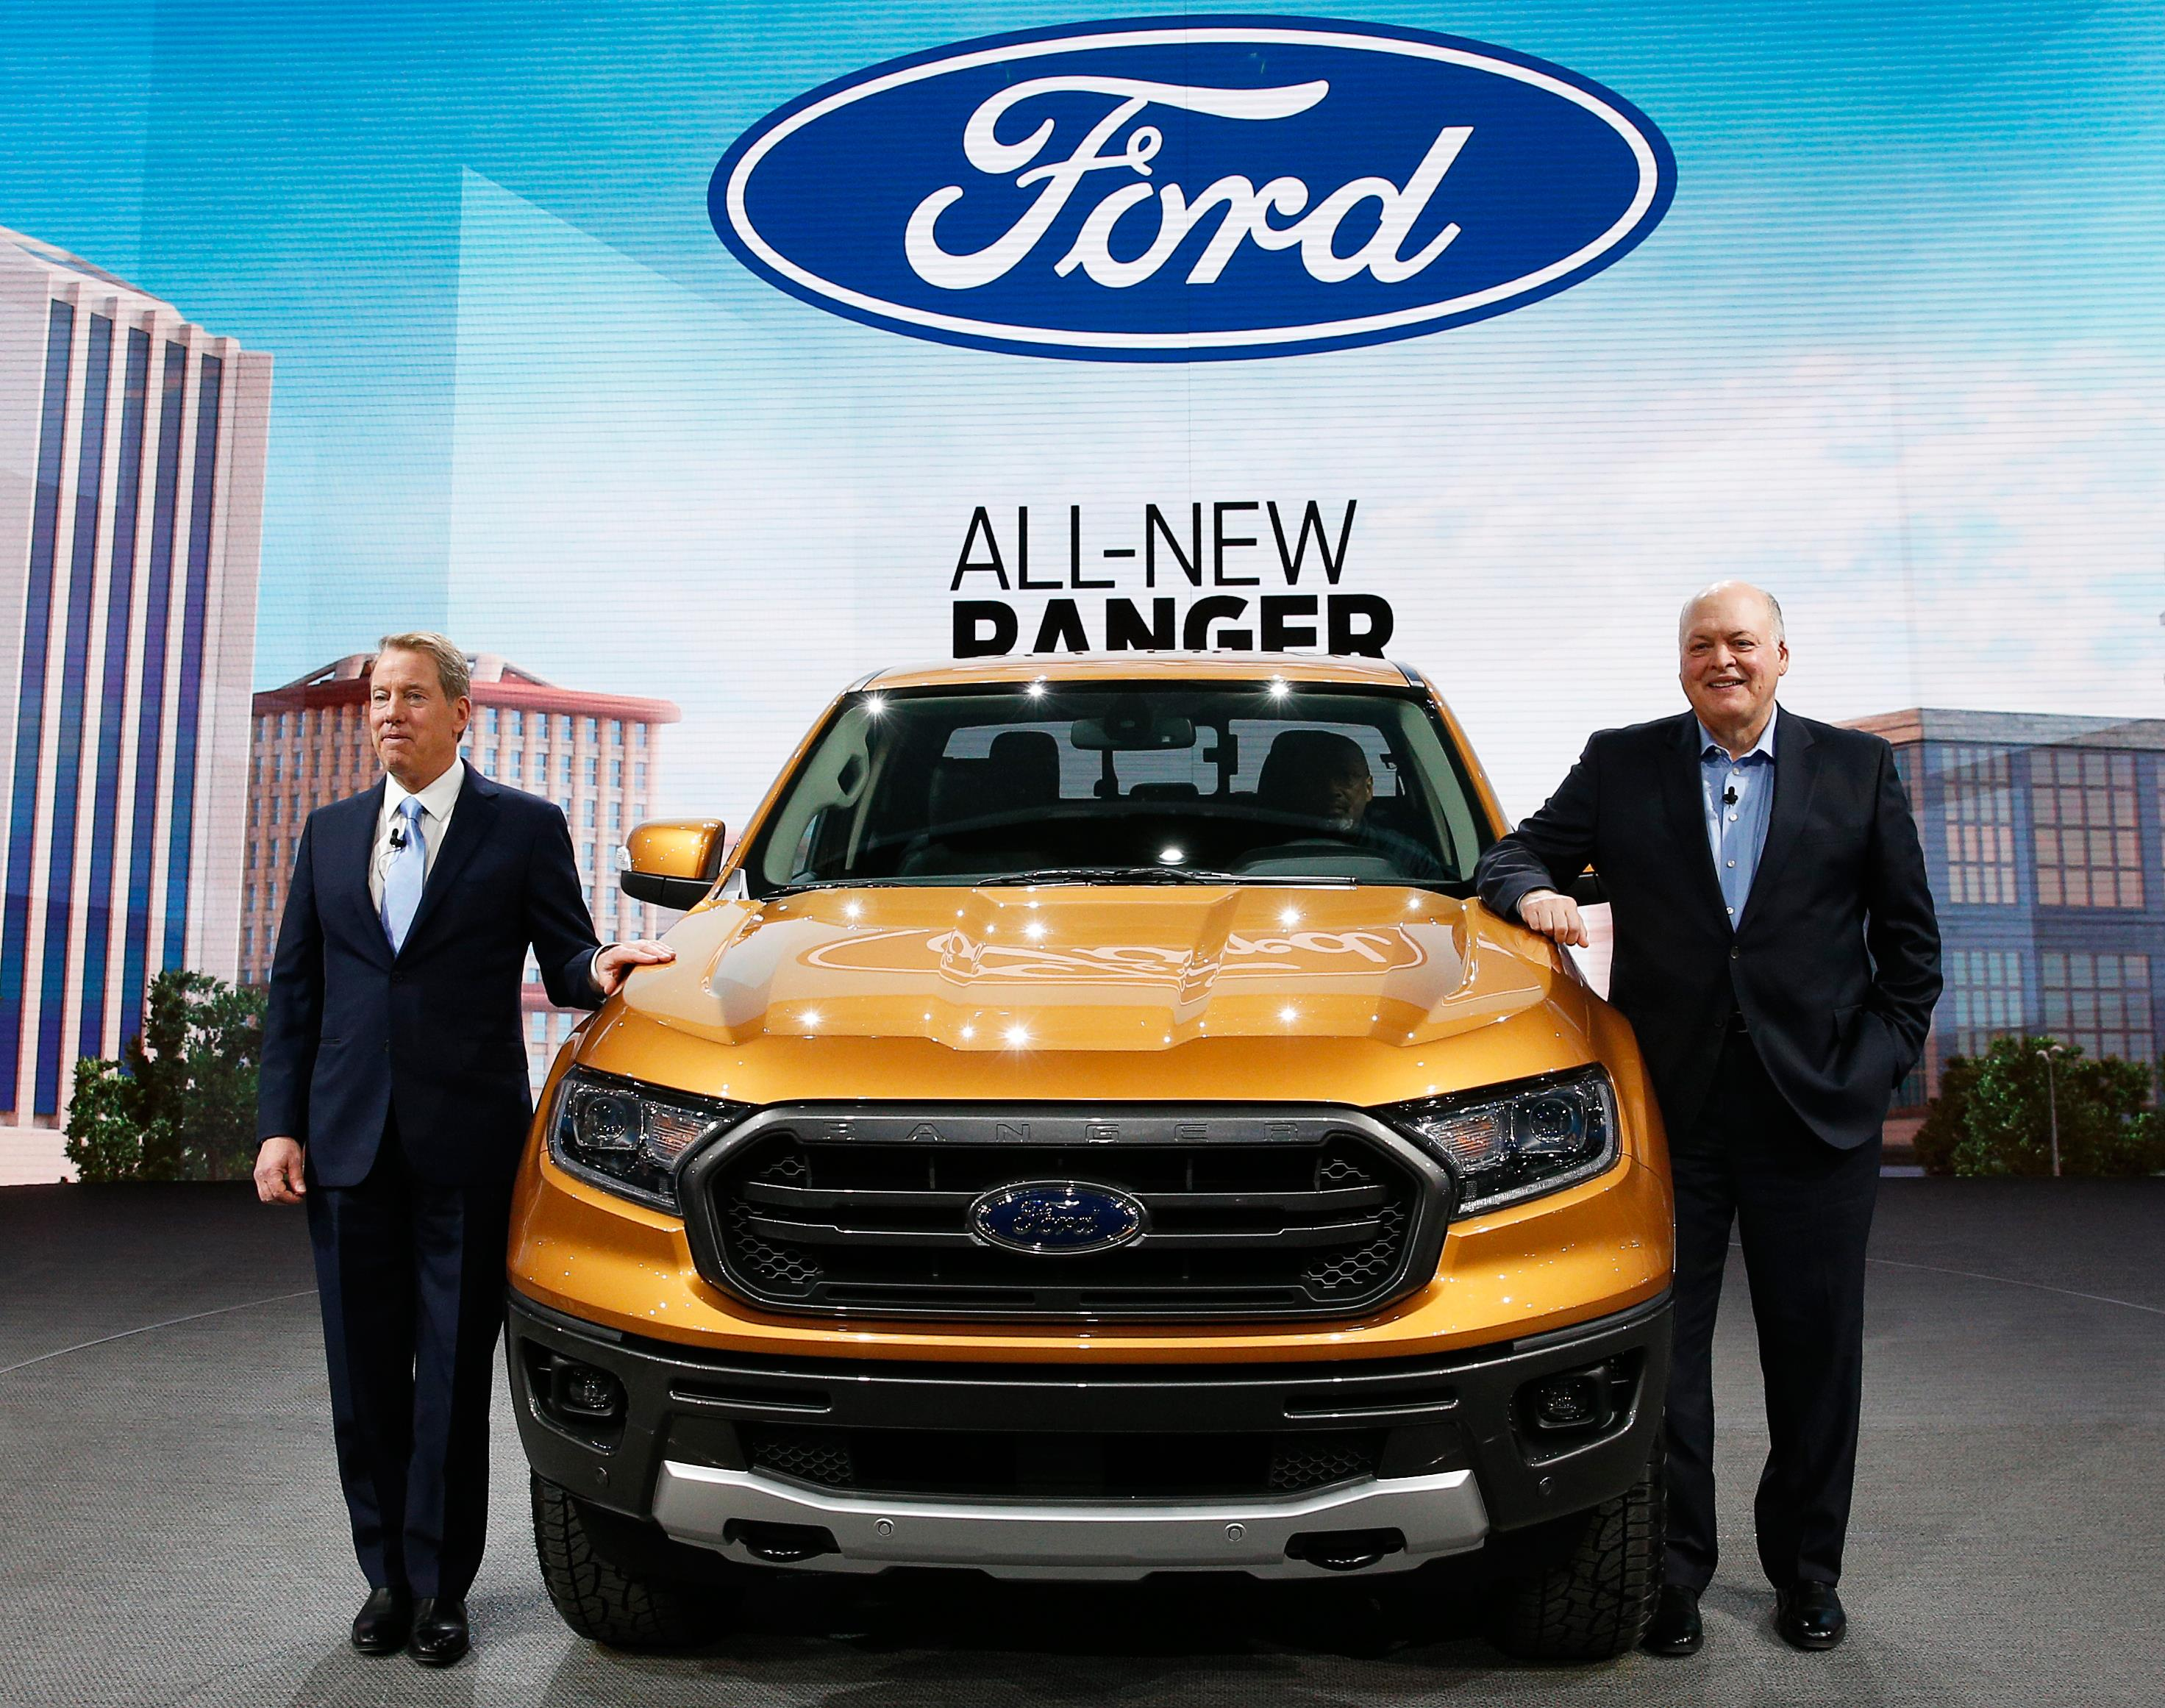 Ford plans 11 billion investment 40 electrified vehicles by 2022 emtv online